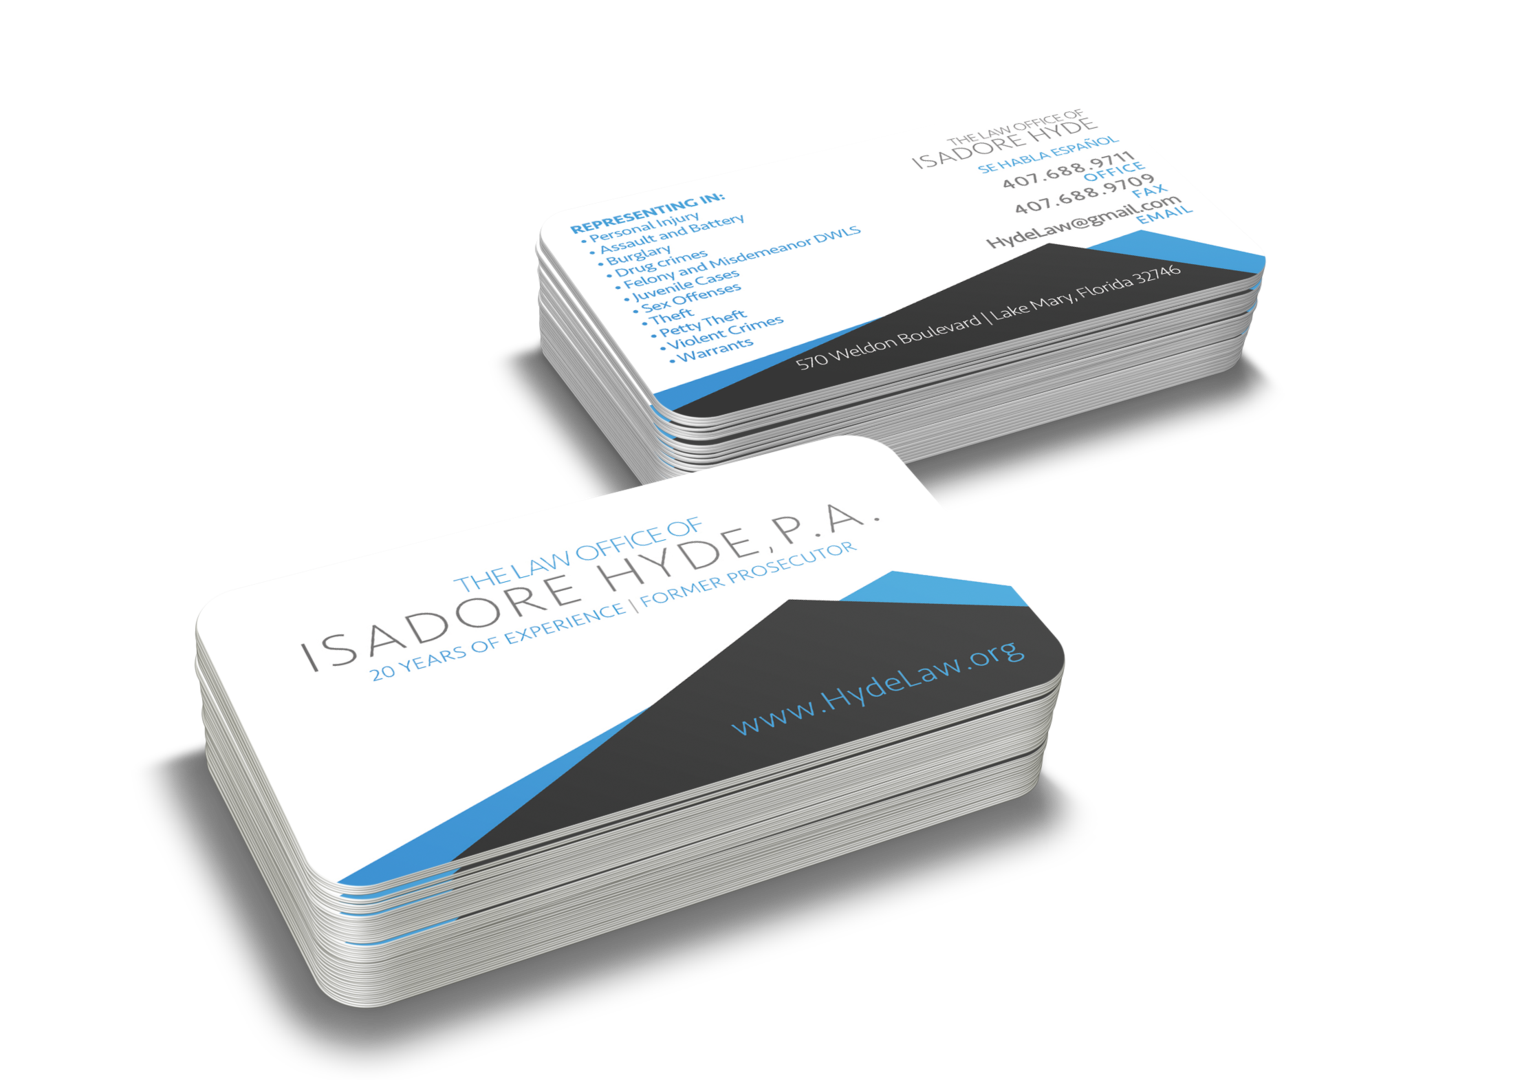 BUSINESS CARDS MAGNETS